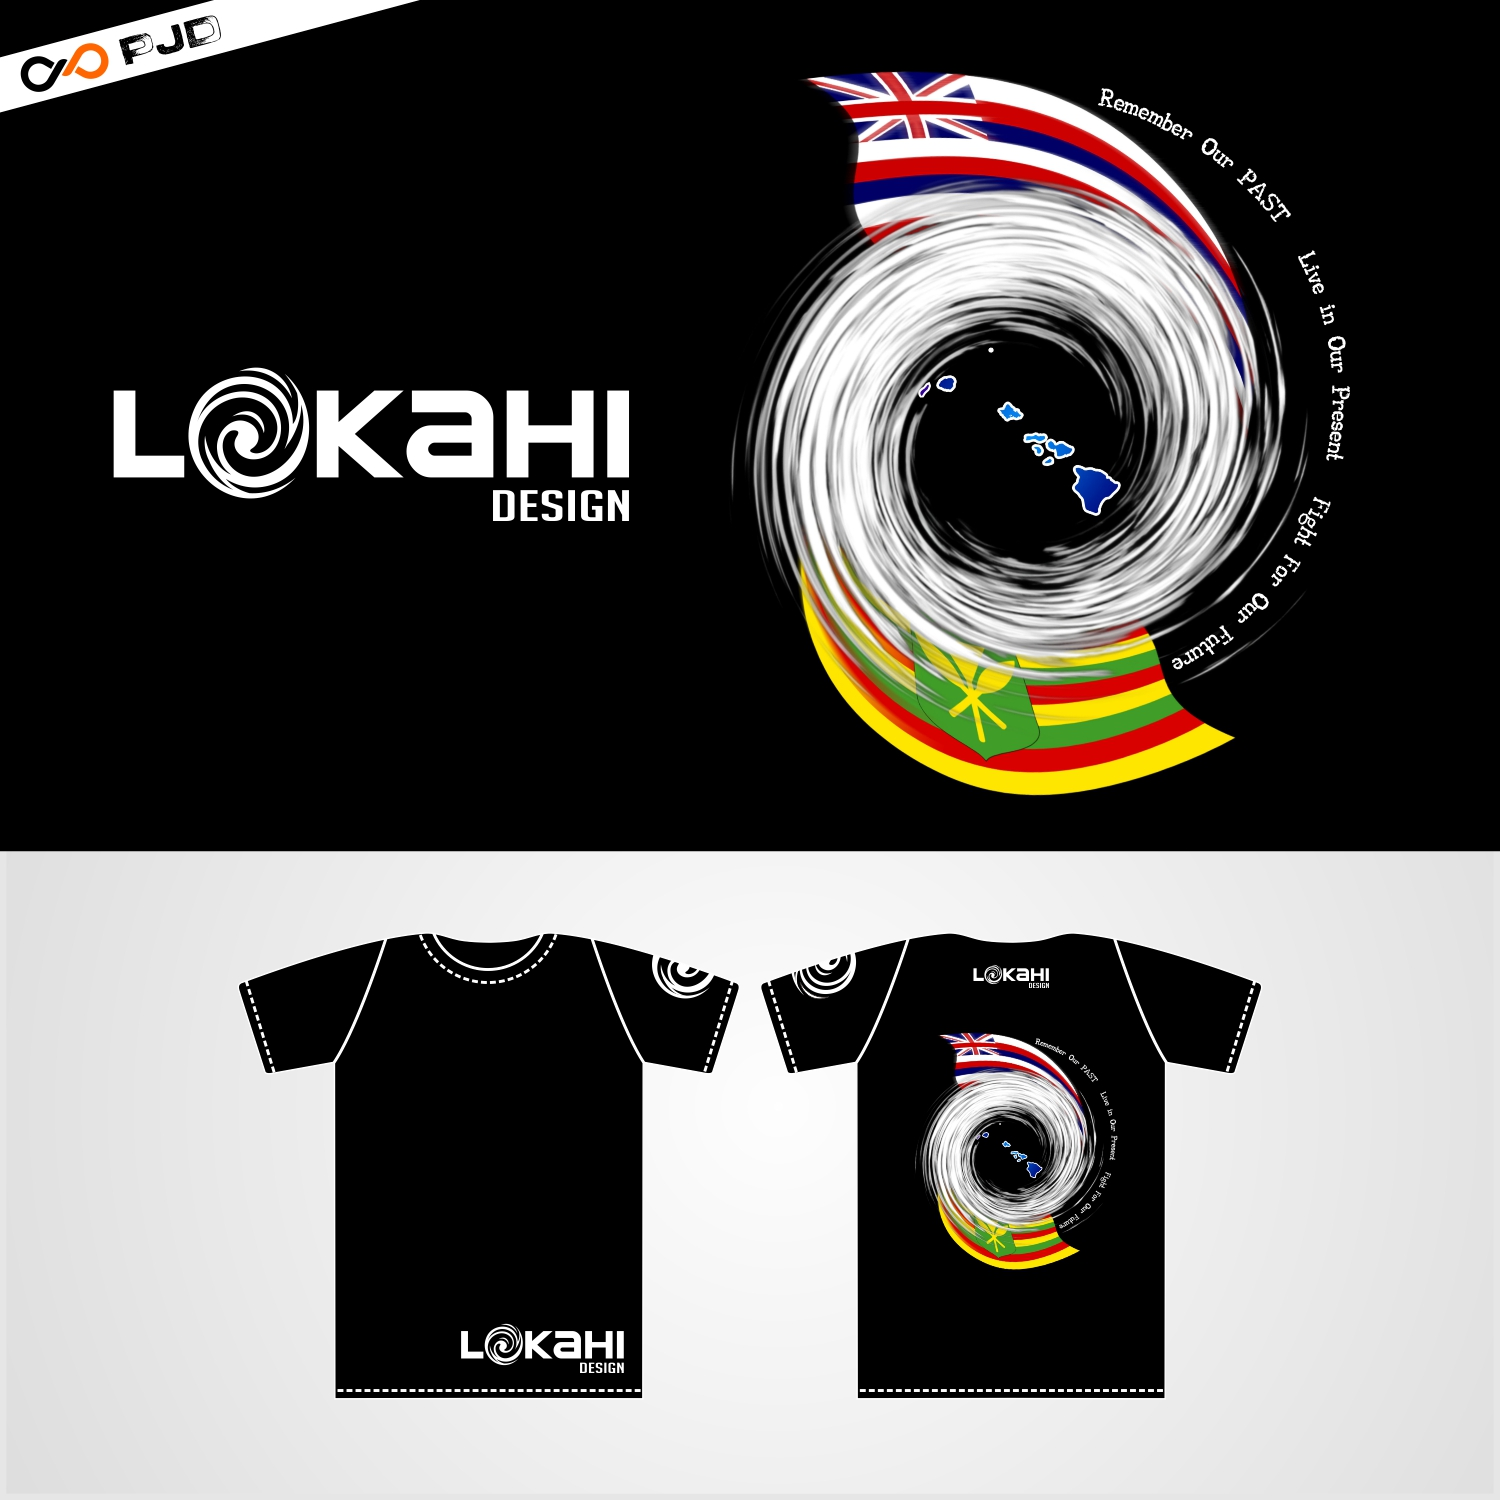 Clothing Design by PJD - Entry No. 117 in the Clothing Design Contest Creative Clothing Design for LOKAHI designs.